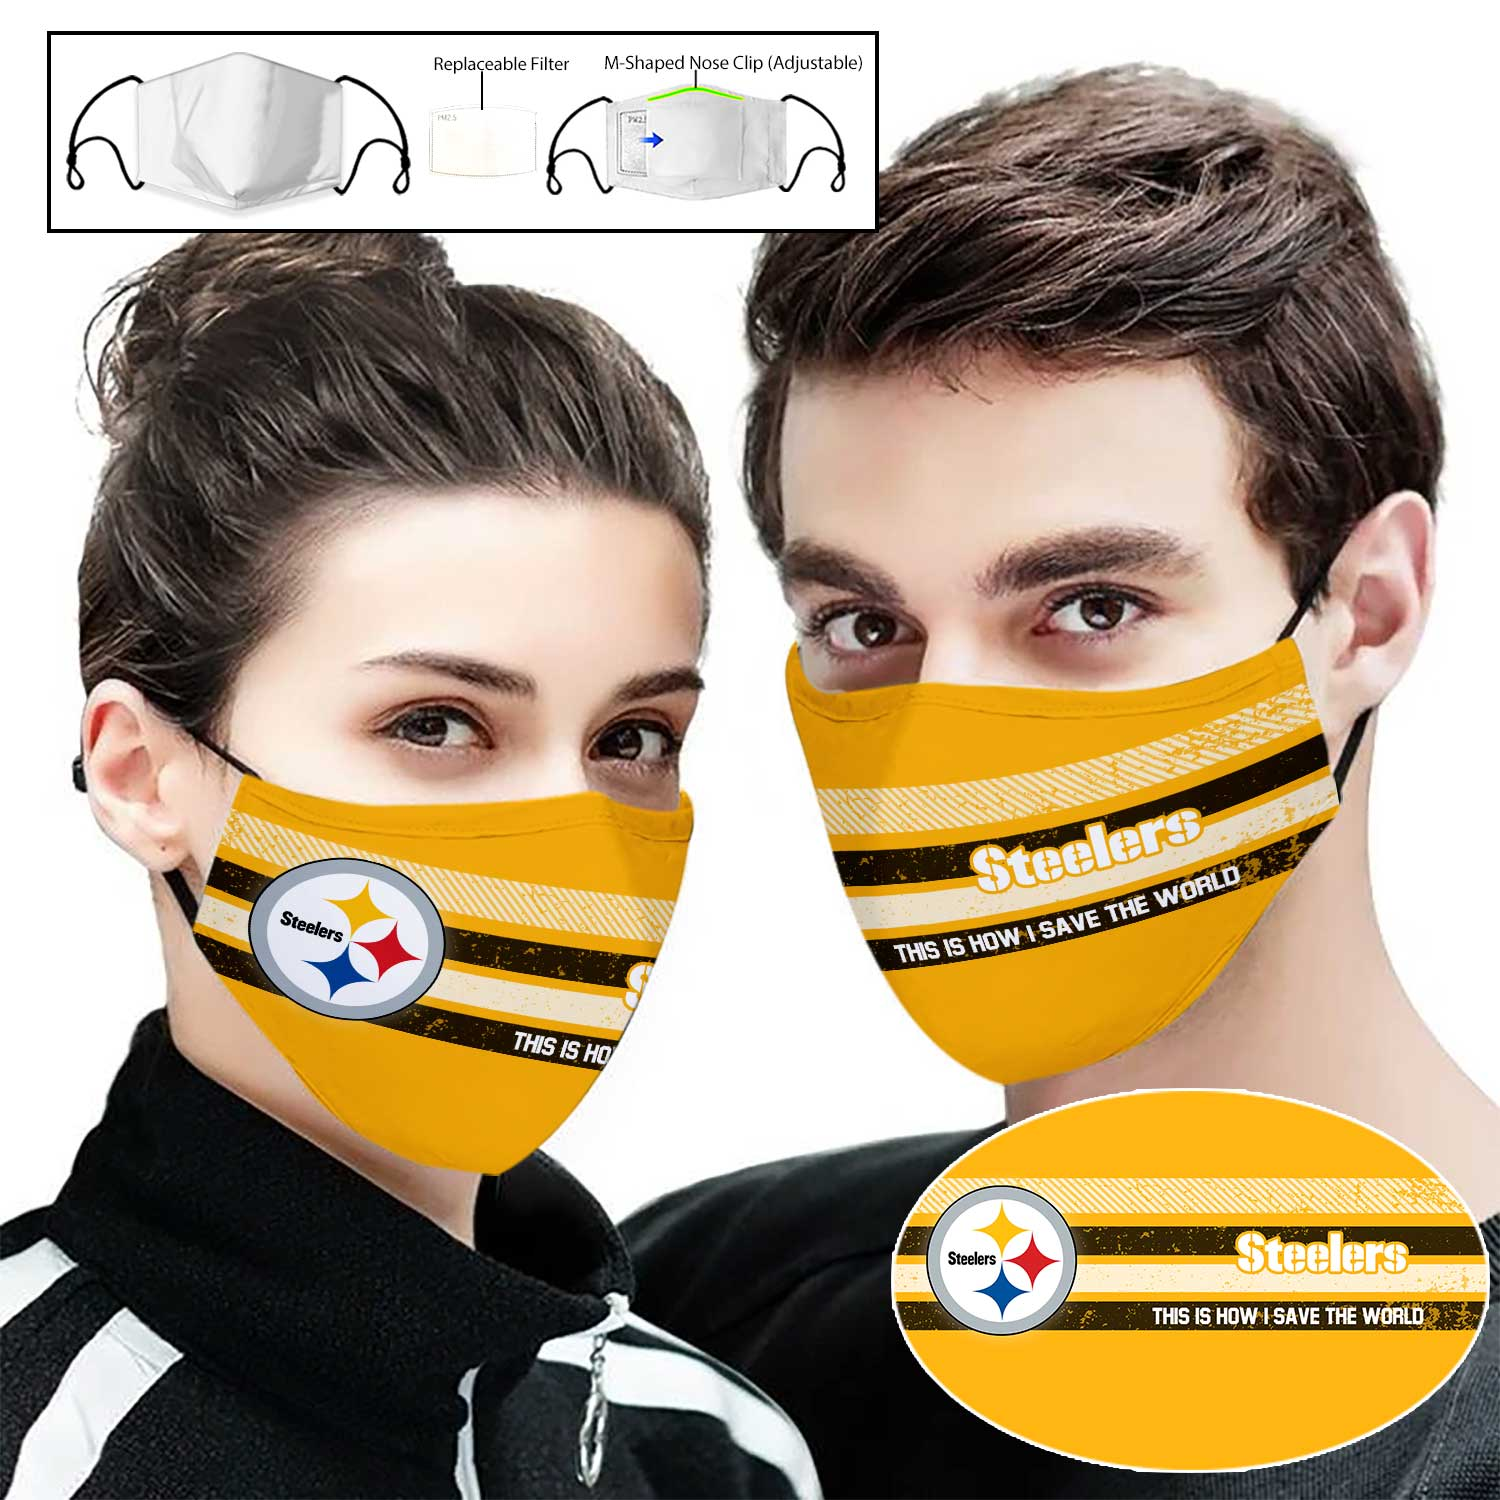 Pittsburgh steelers this is how i save the world full printing face mask 1